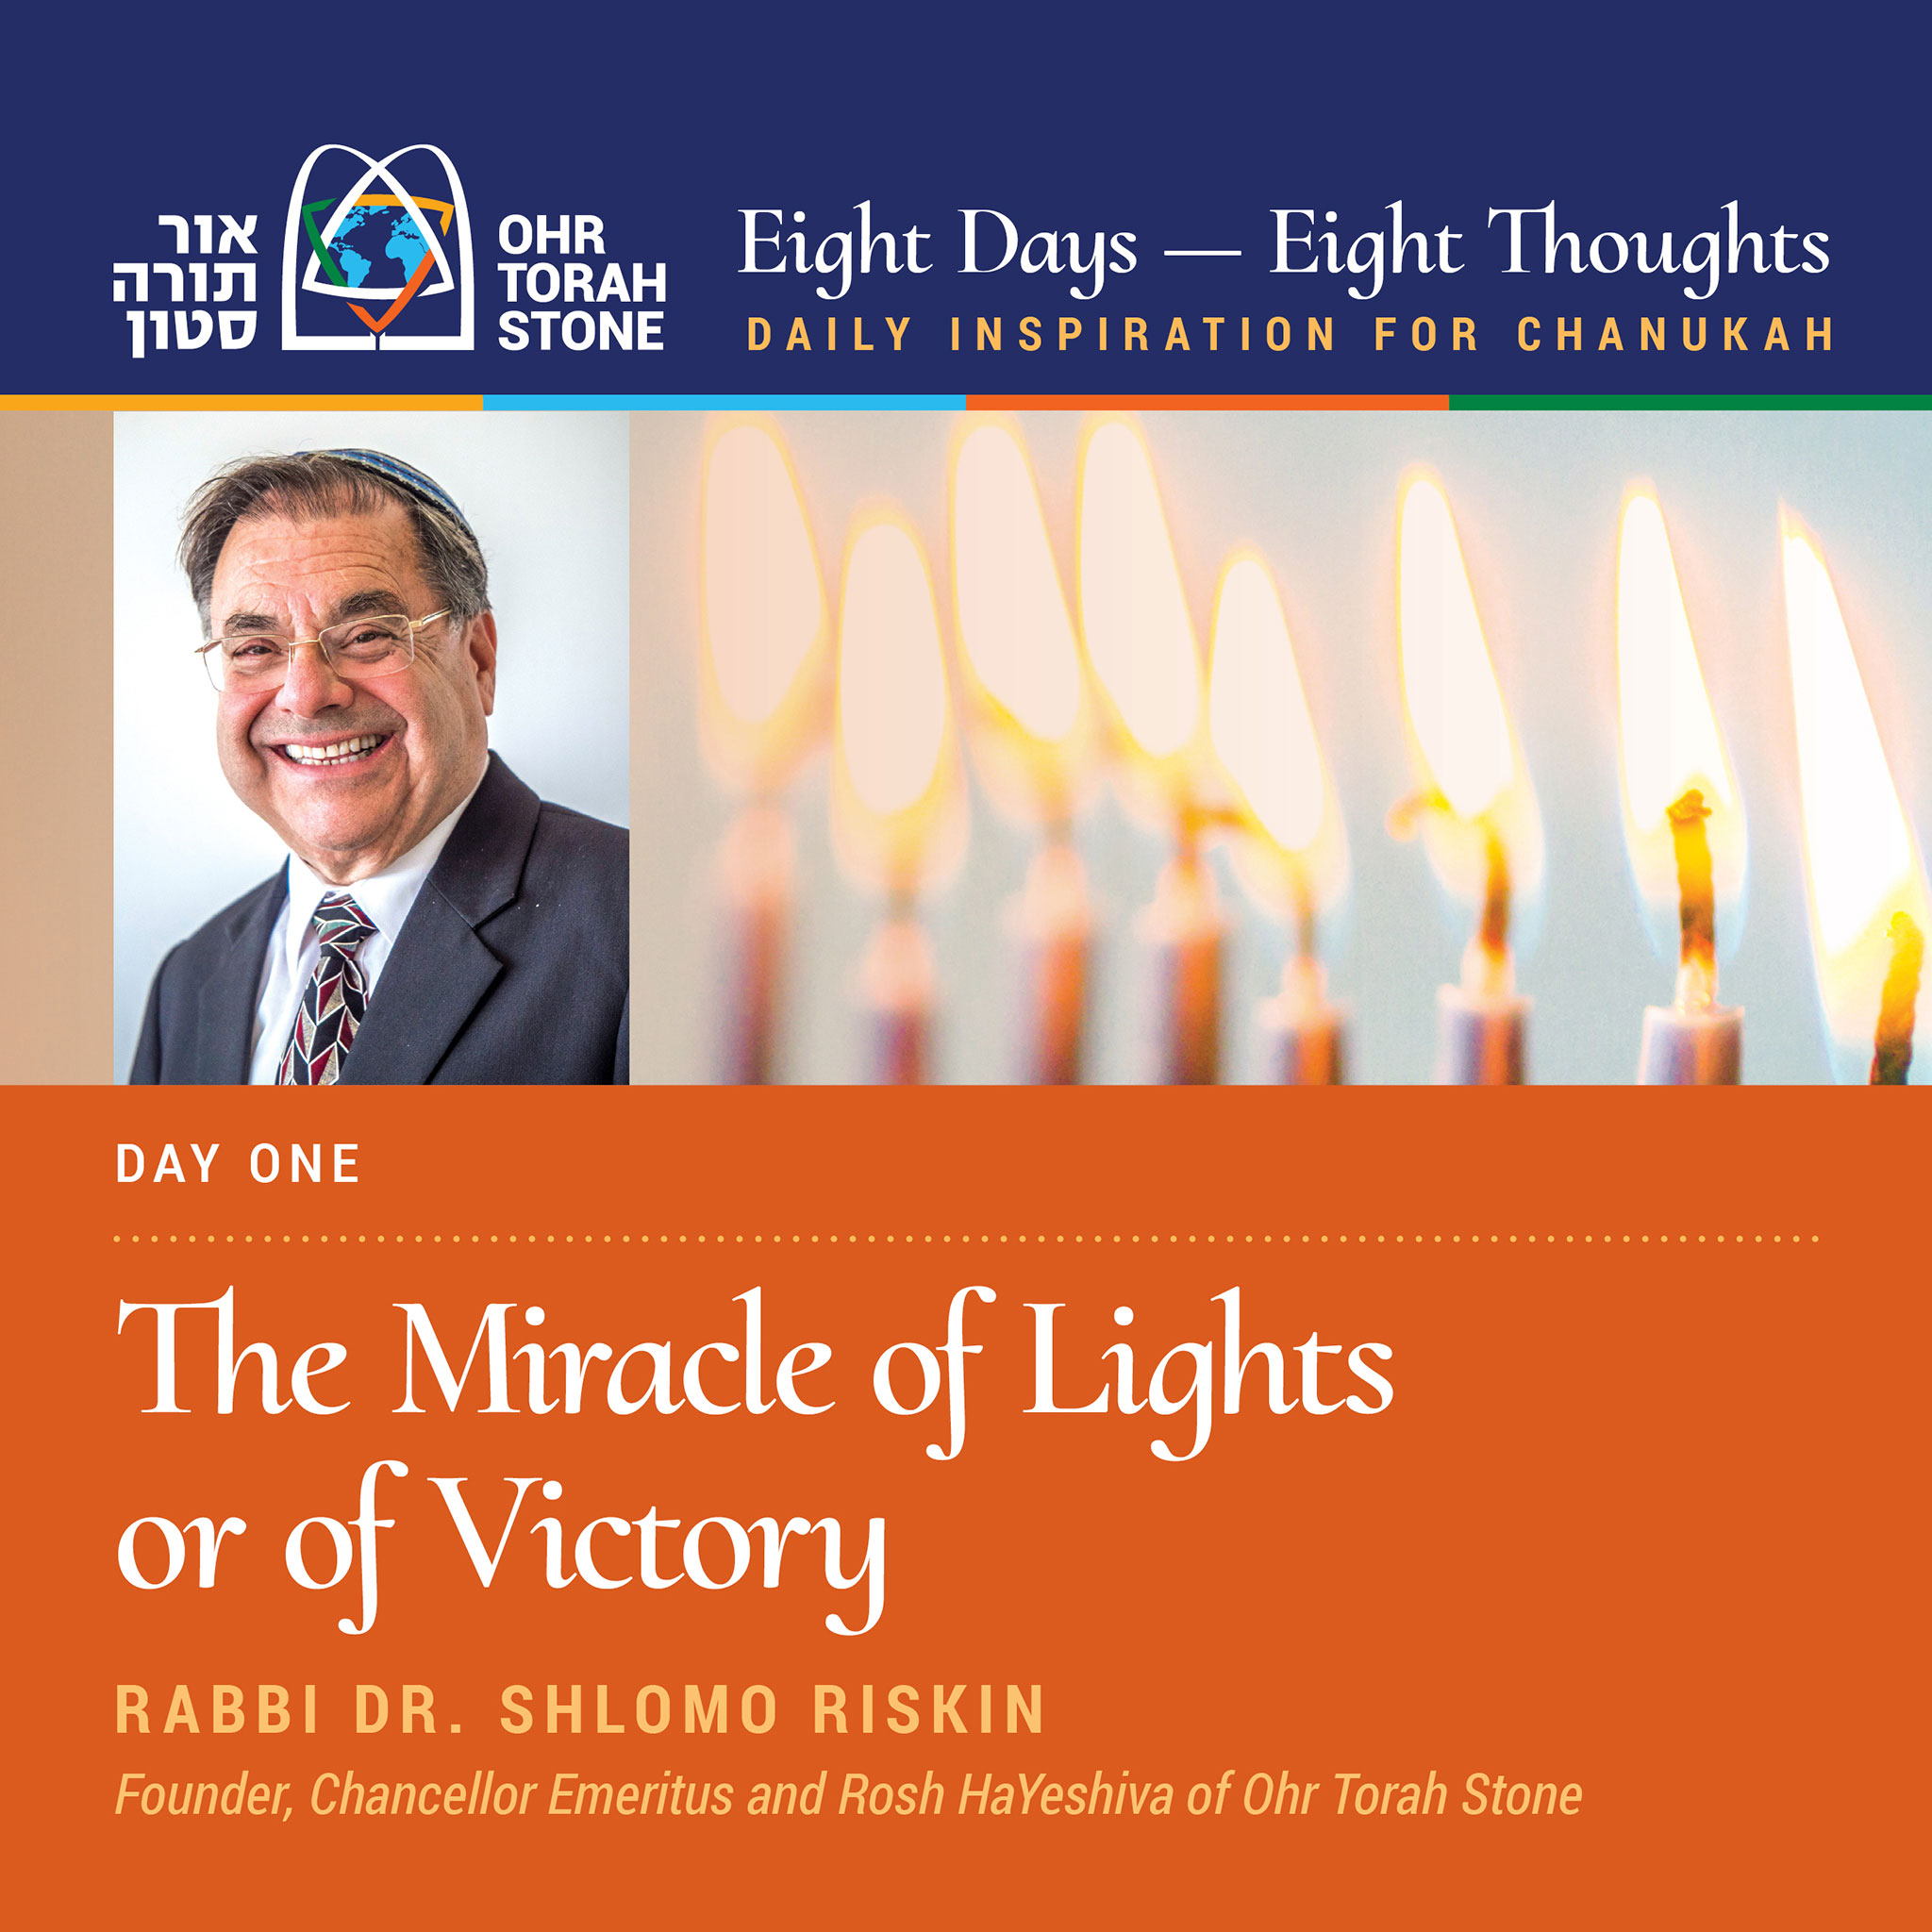 Chanukah Rabbi Riskin